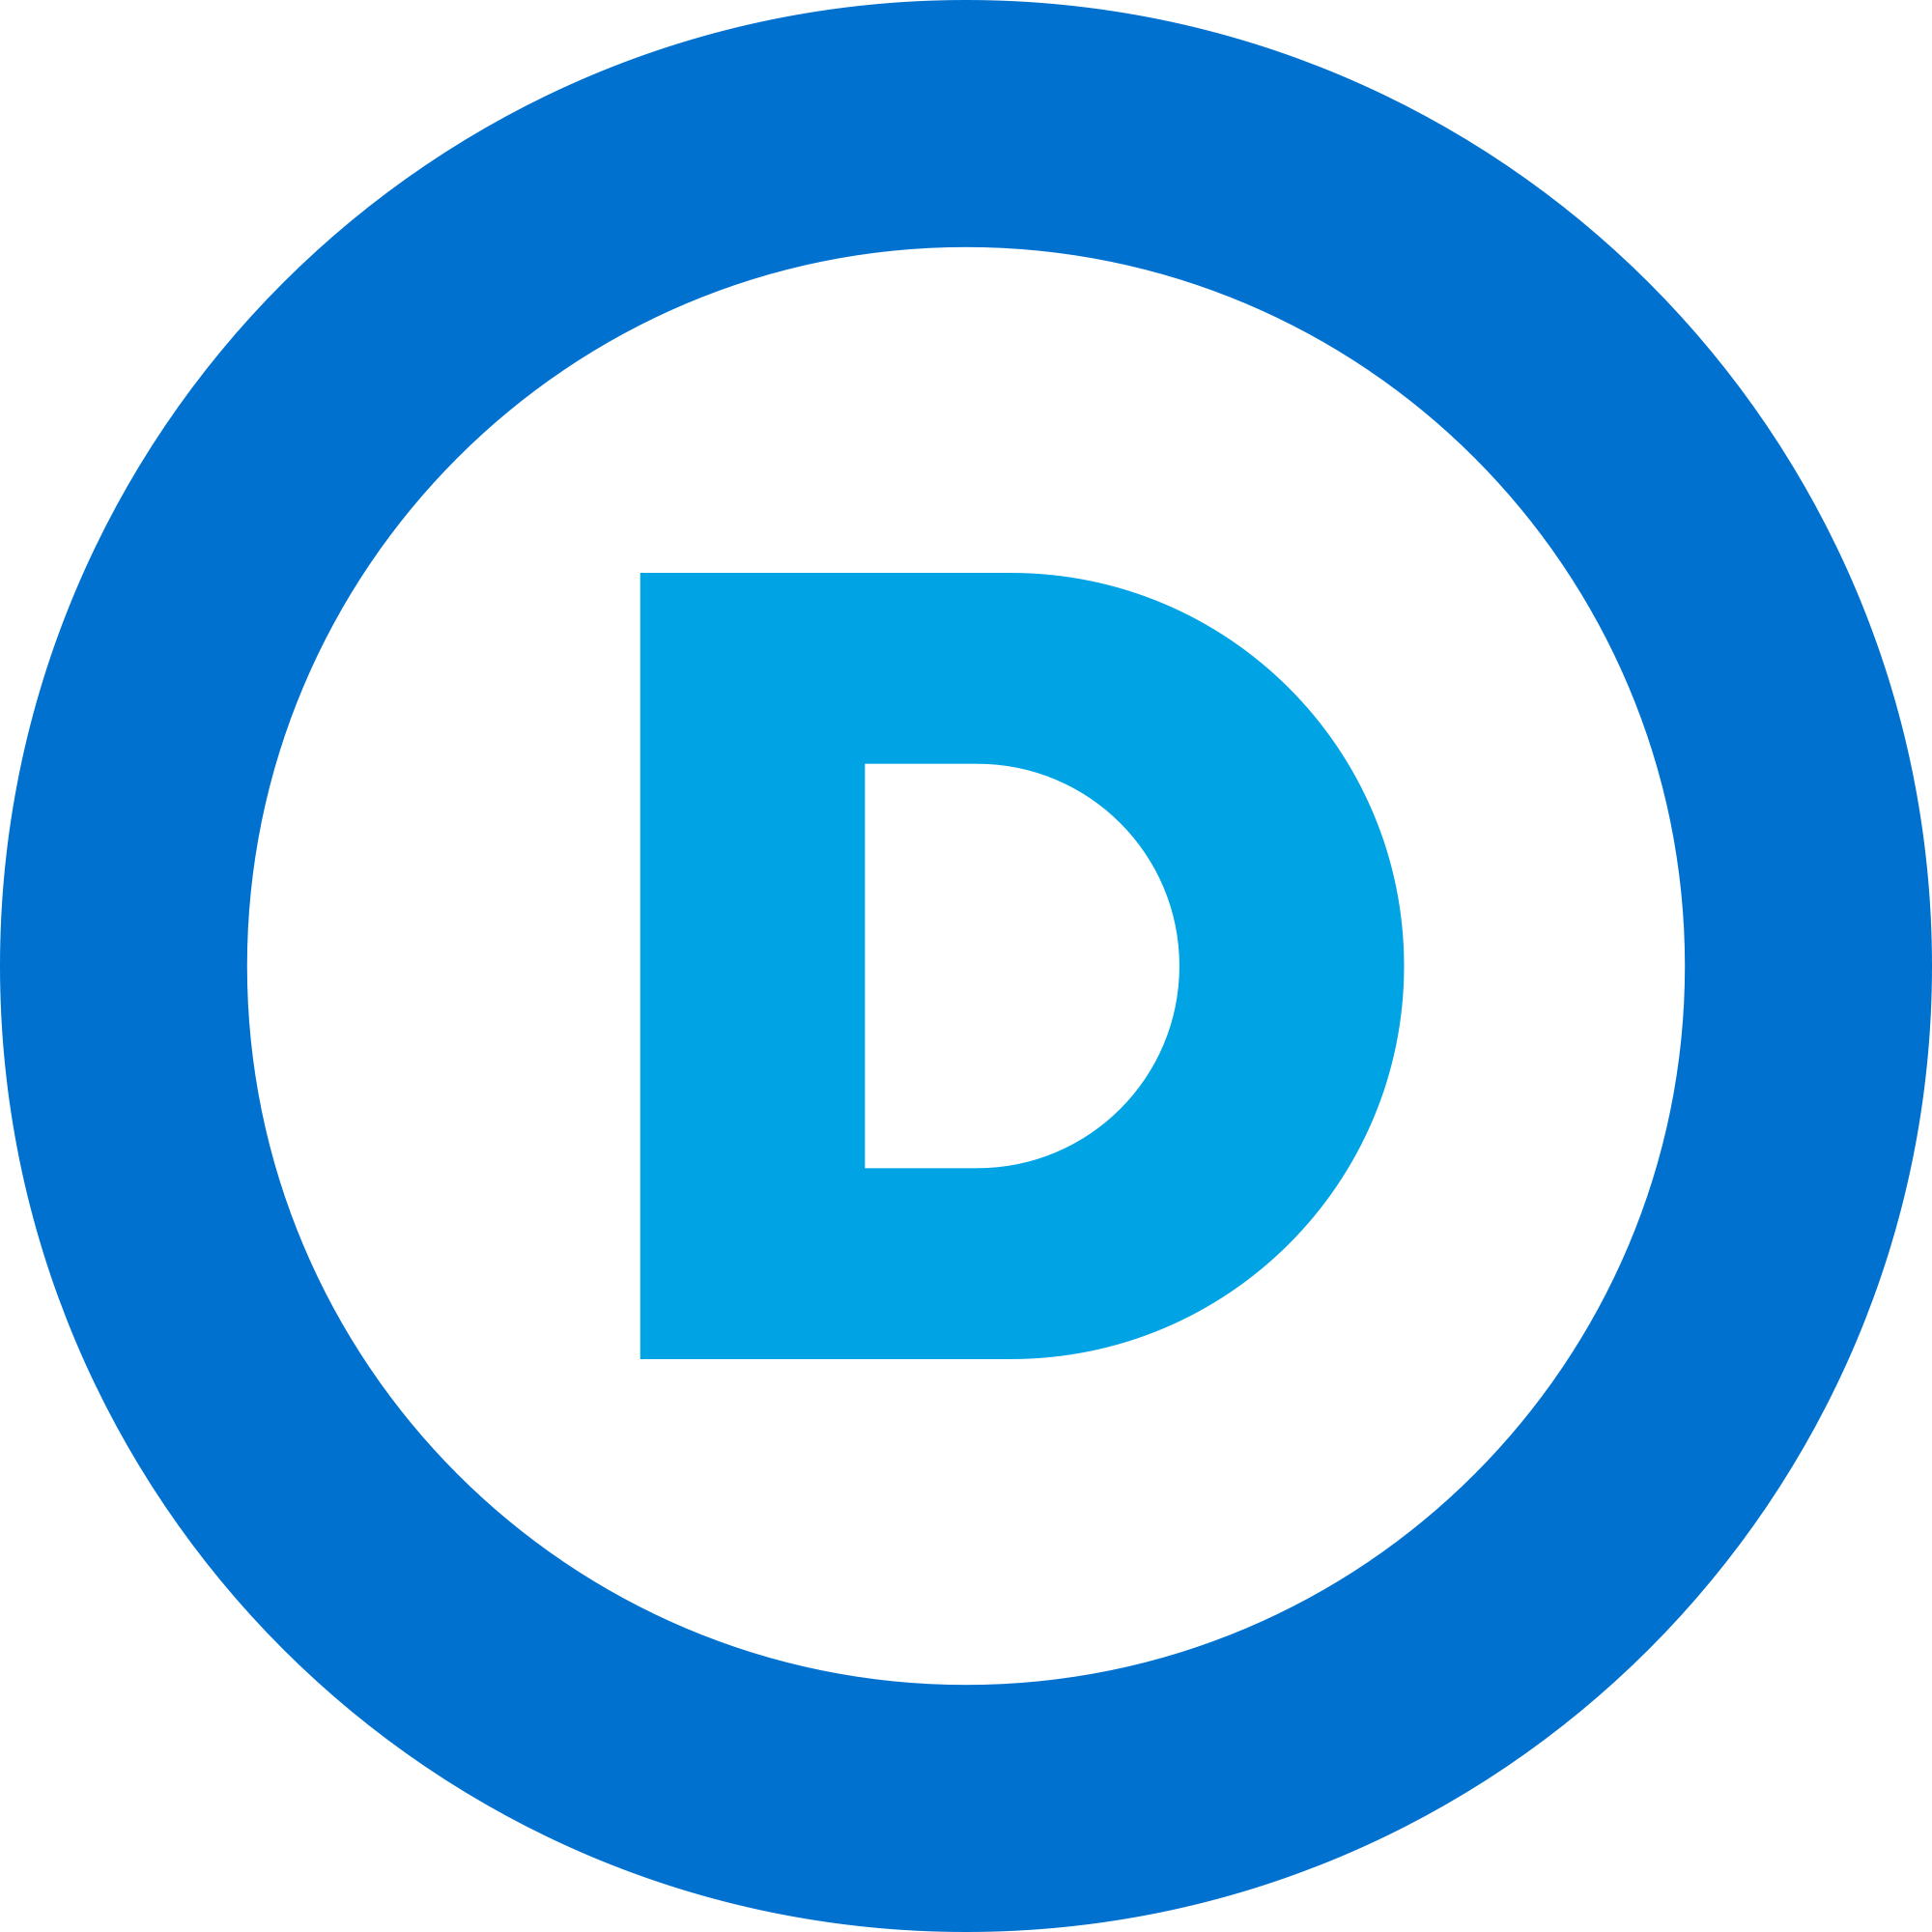 St. Clair County Democratic Party